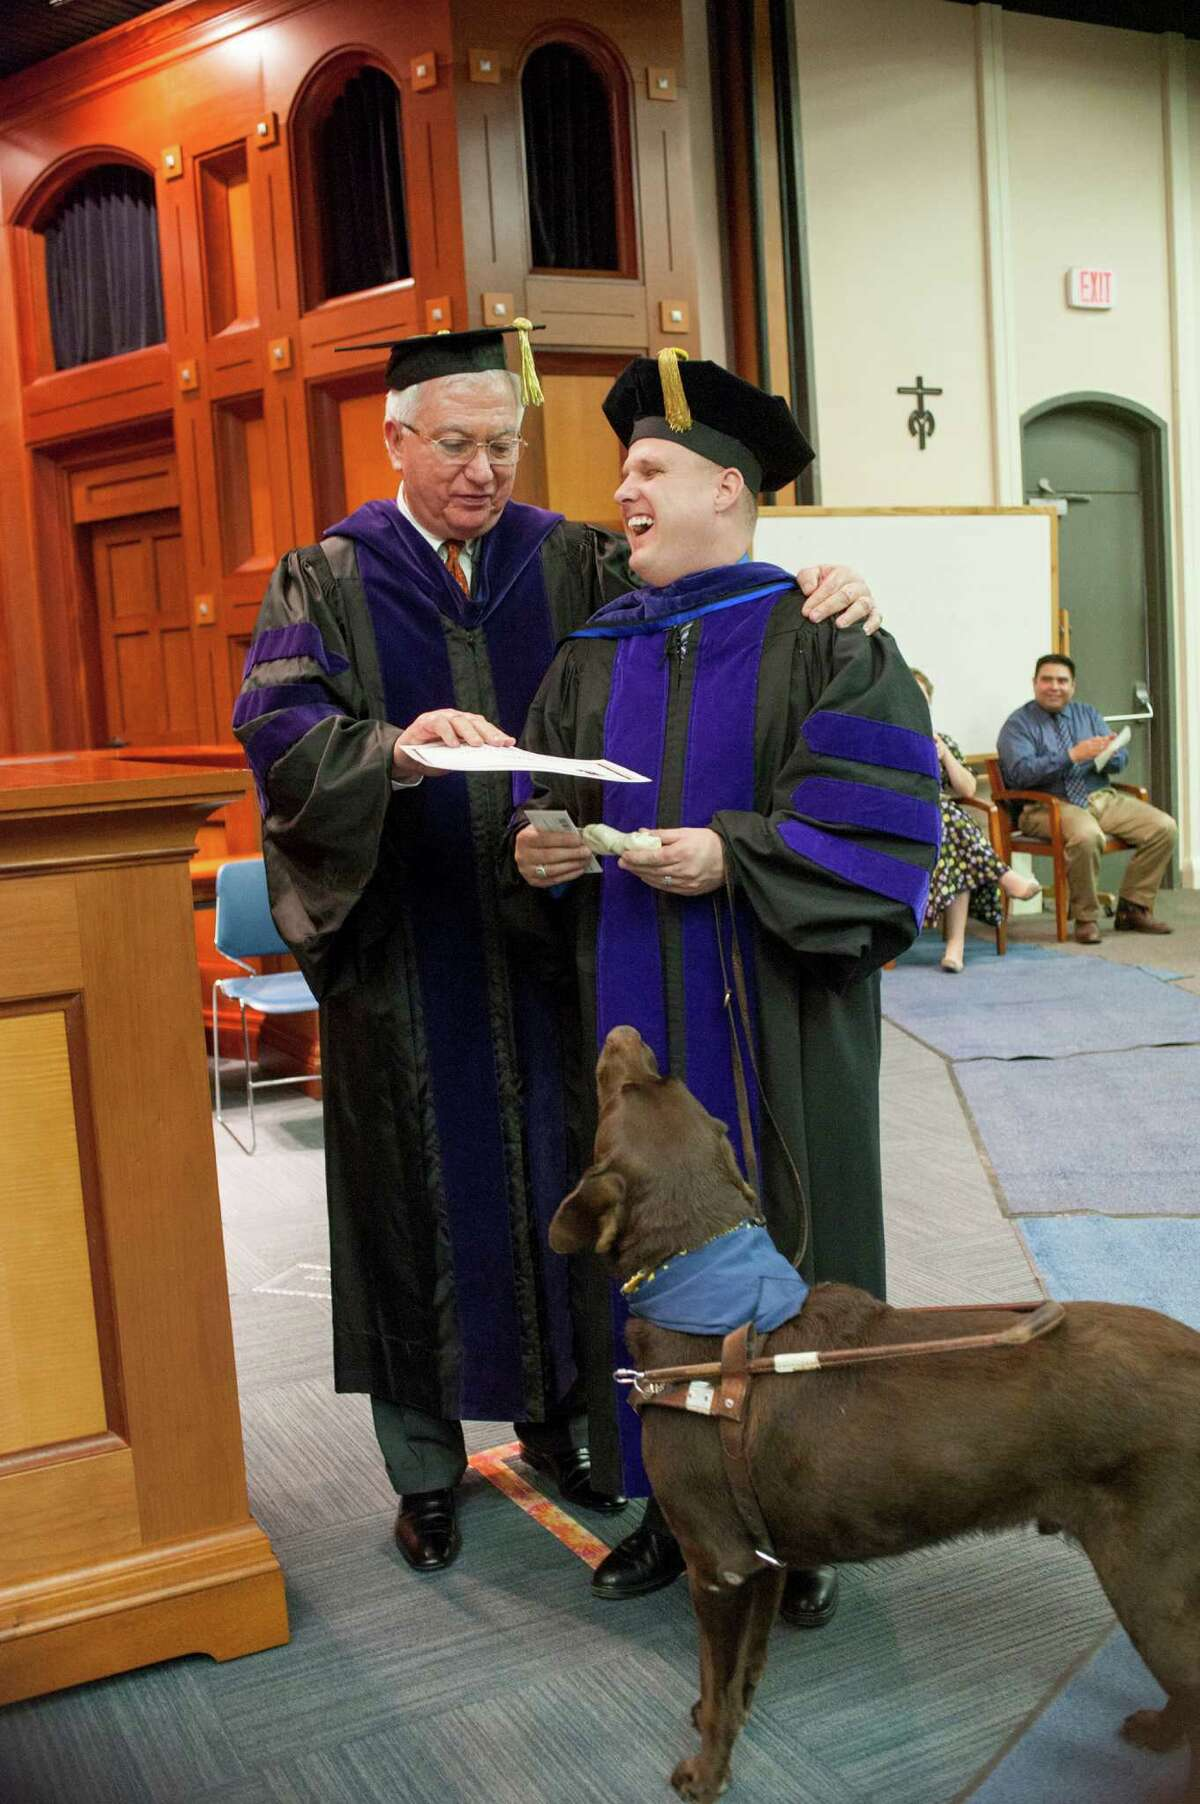 Charles Cantu, dean of St. Mary's University's School of Law, honors Robert Dittman, 35, for completing his law degree and presents his seeing-eye dog Snickers with a bone and a certificate and called him 'the most popular student in law school' at ceremony Dec. 8, 2012. Dittman is blind but aspires to become a military attorney. Photo credit: Melanie Davis and St. Mary's University